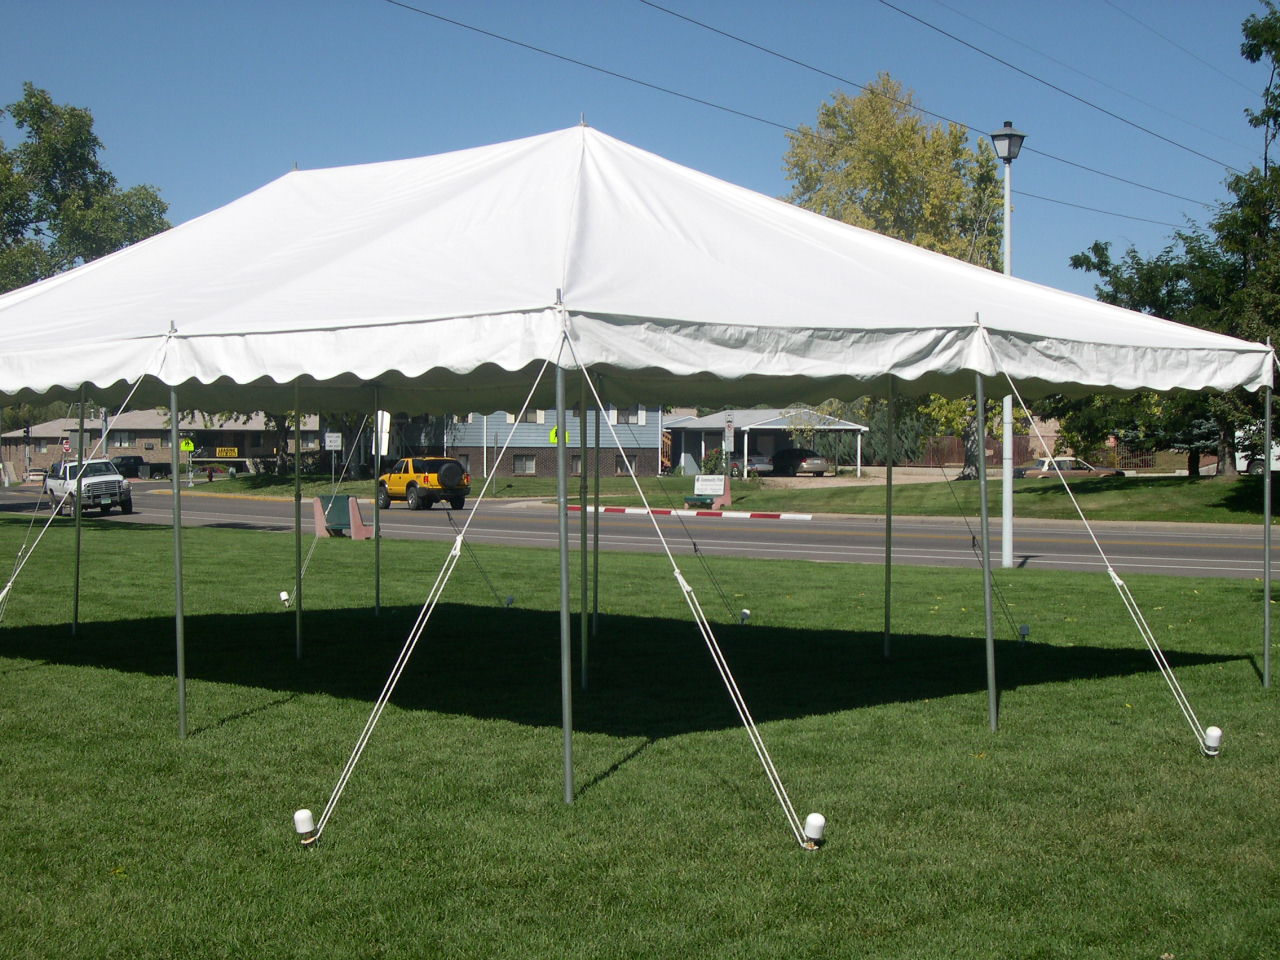 20' x 30' White Canopy Tent